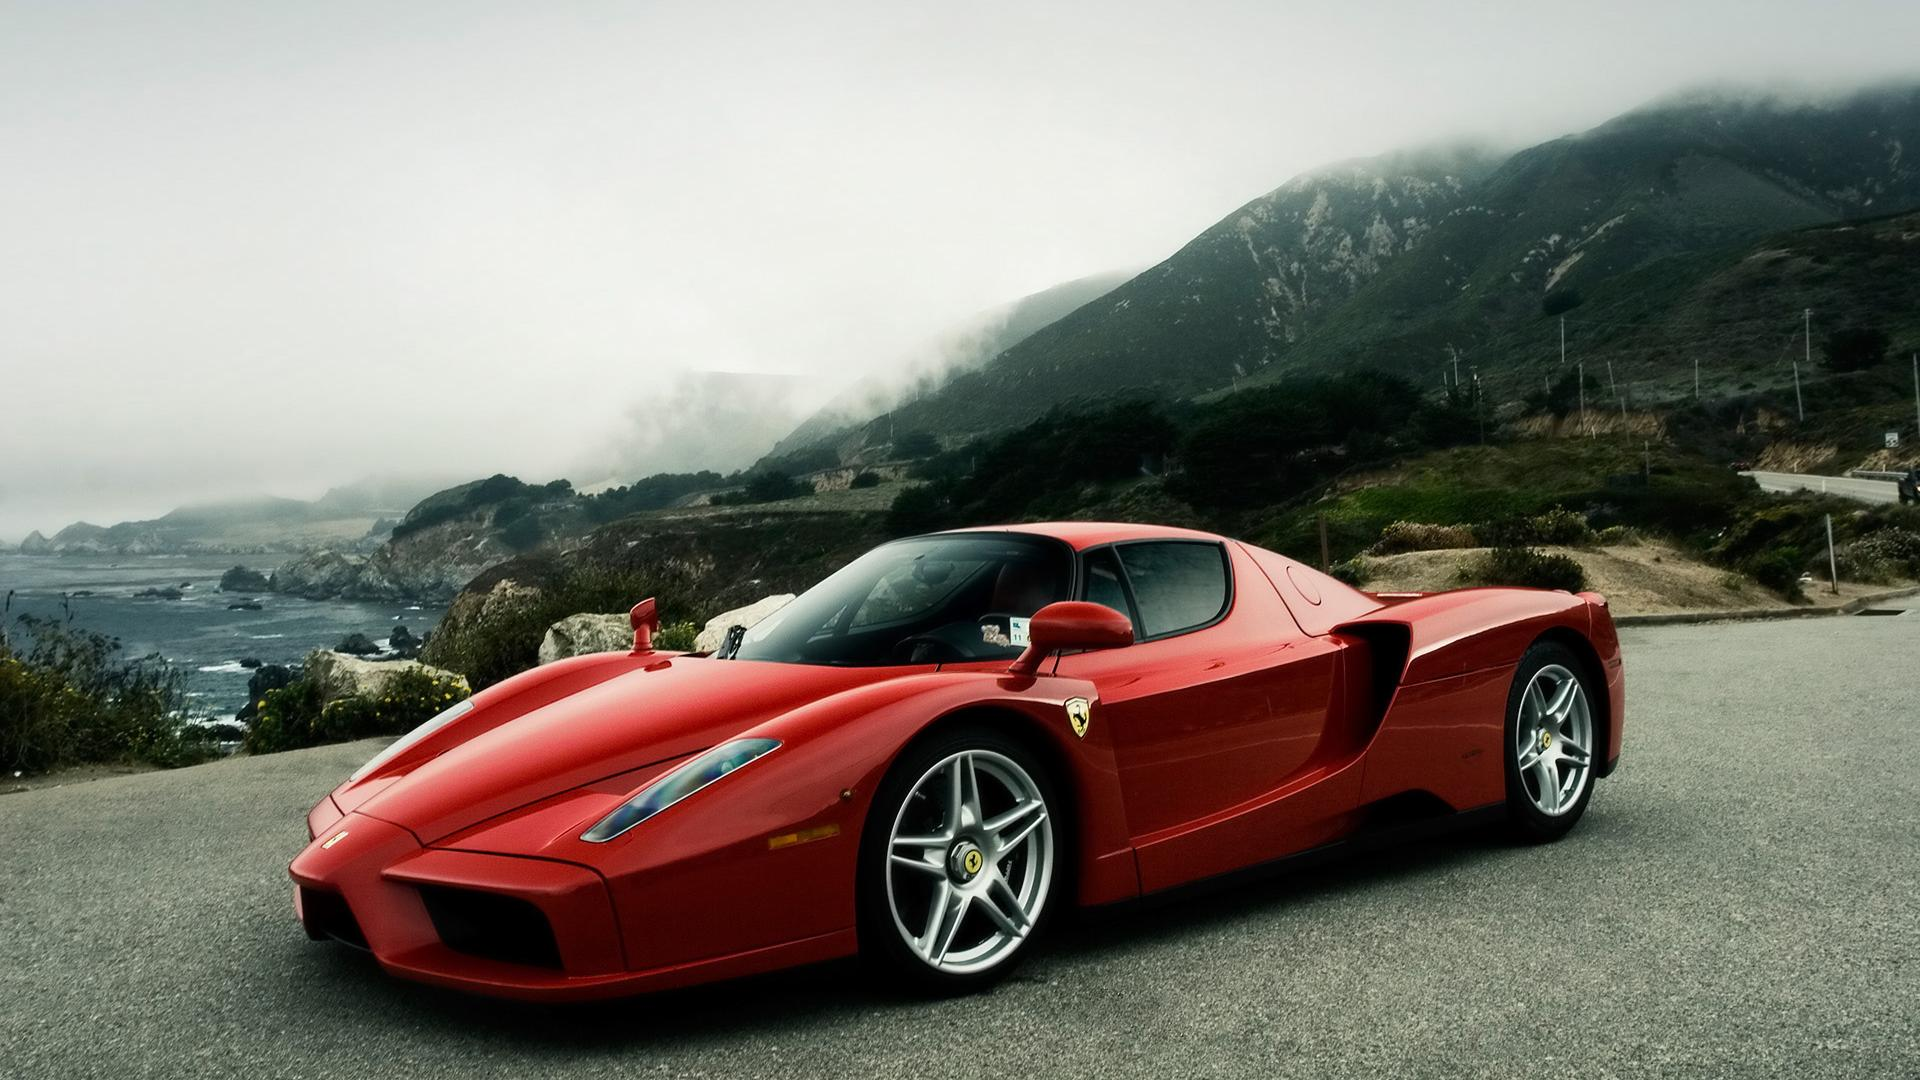 Sports Cars Hd Wallpapers Top Free Sports Cars Hd Backgrounds